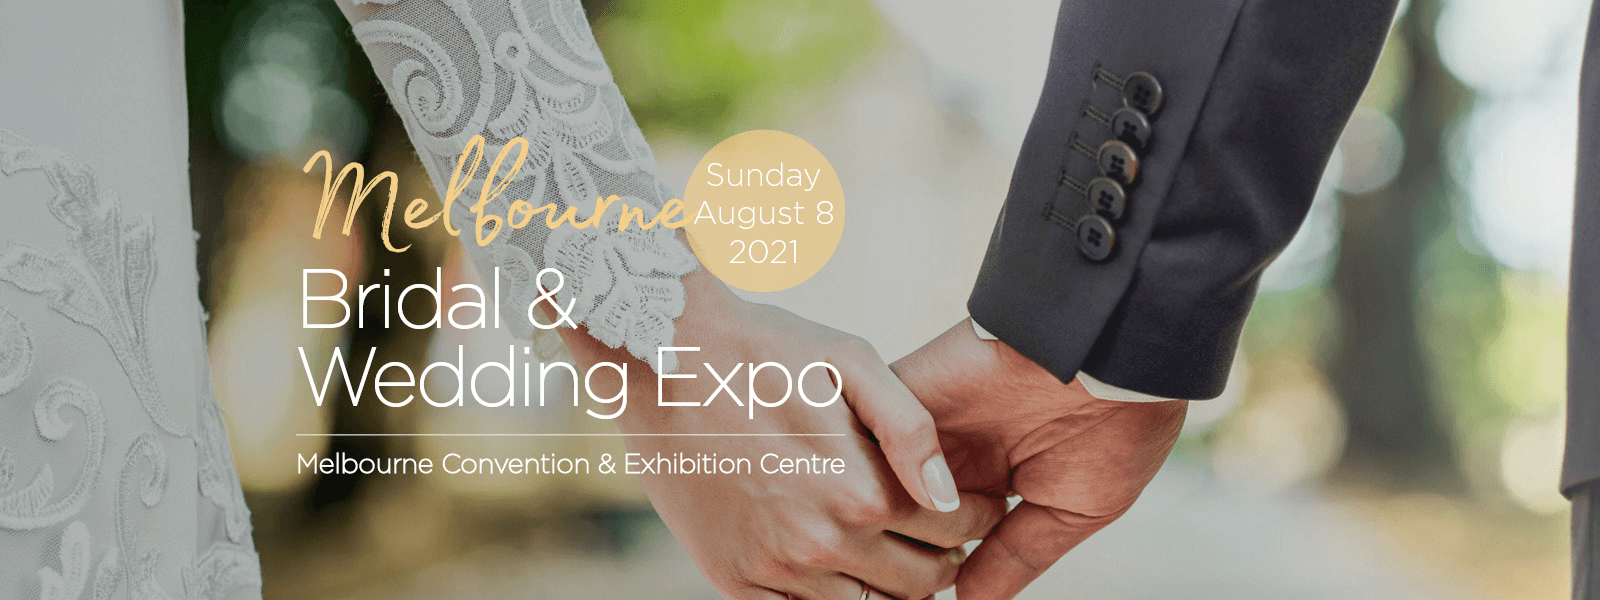 Melbourne Bridal & Wedding Expo   8th August 2021